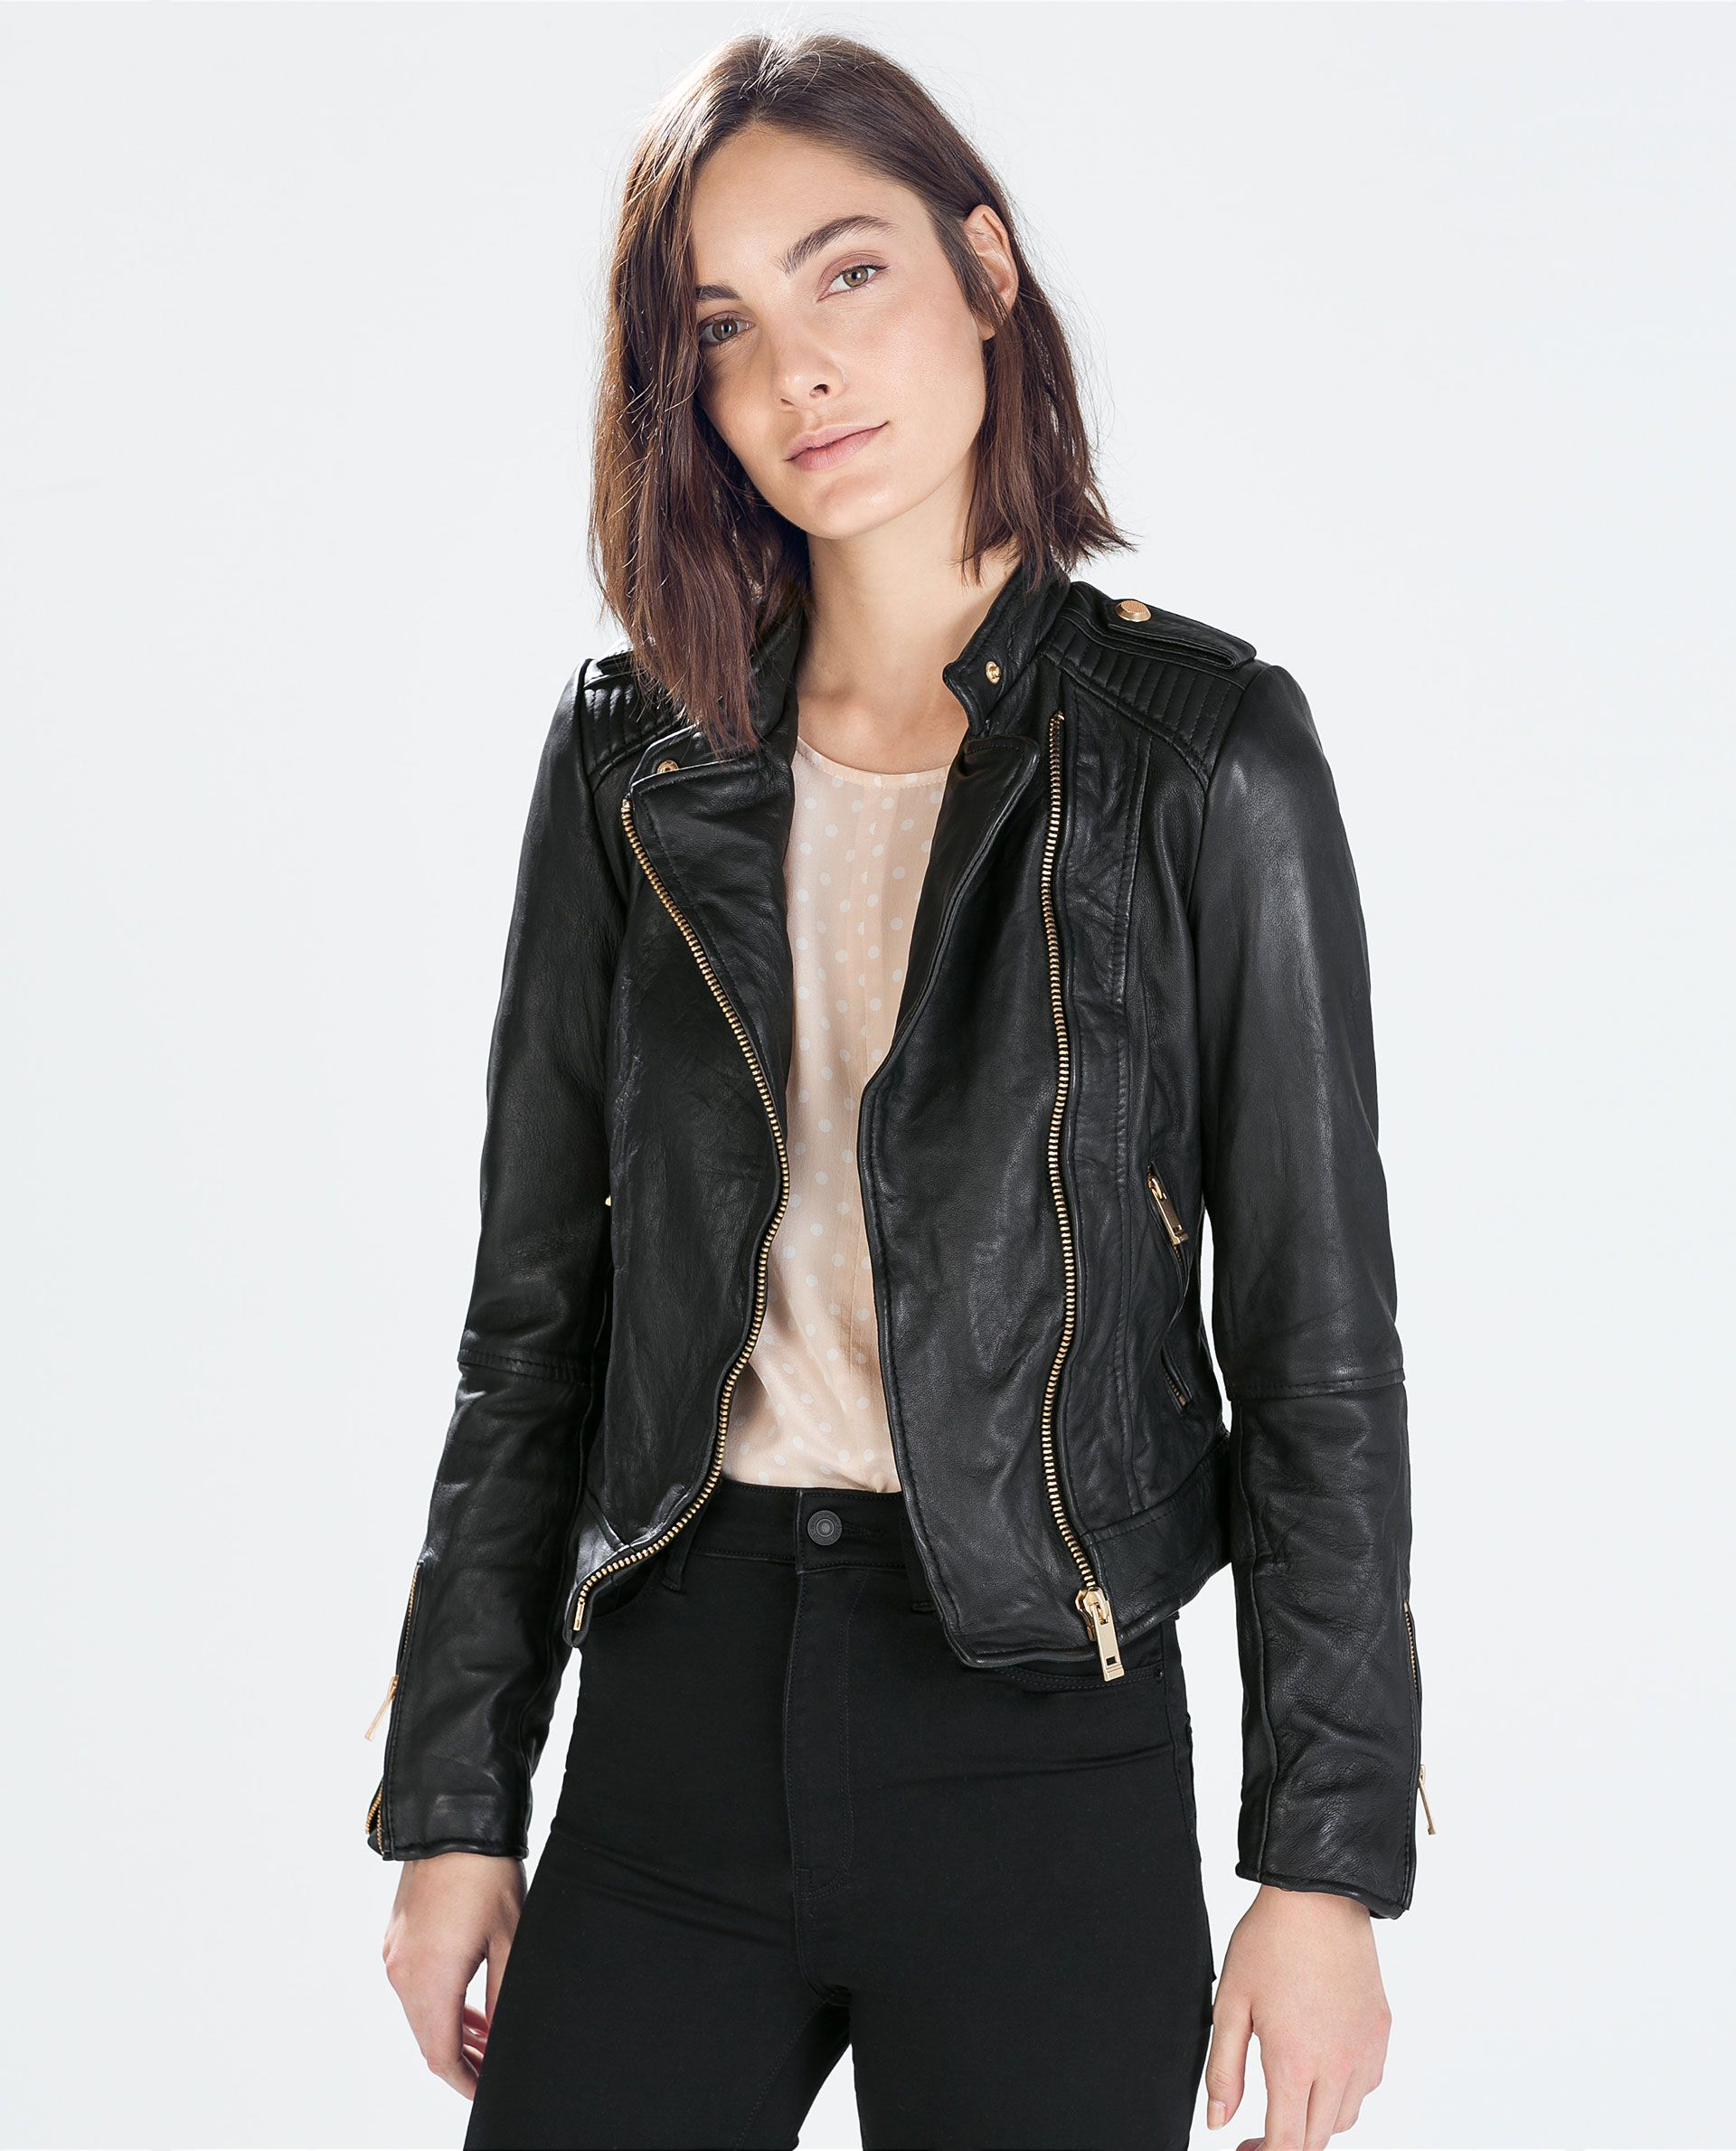 Zara Leather Outerwear women, Leather jacket, Fashion